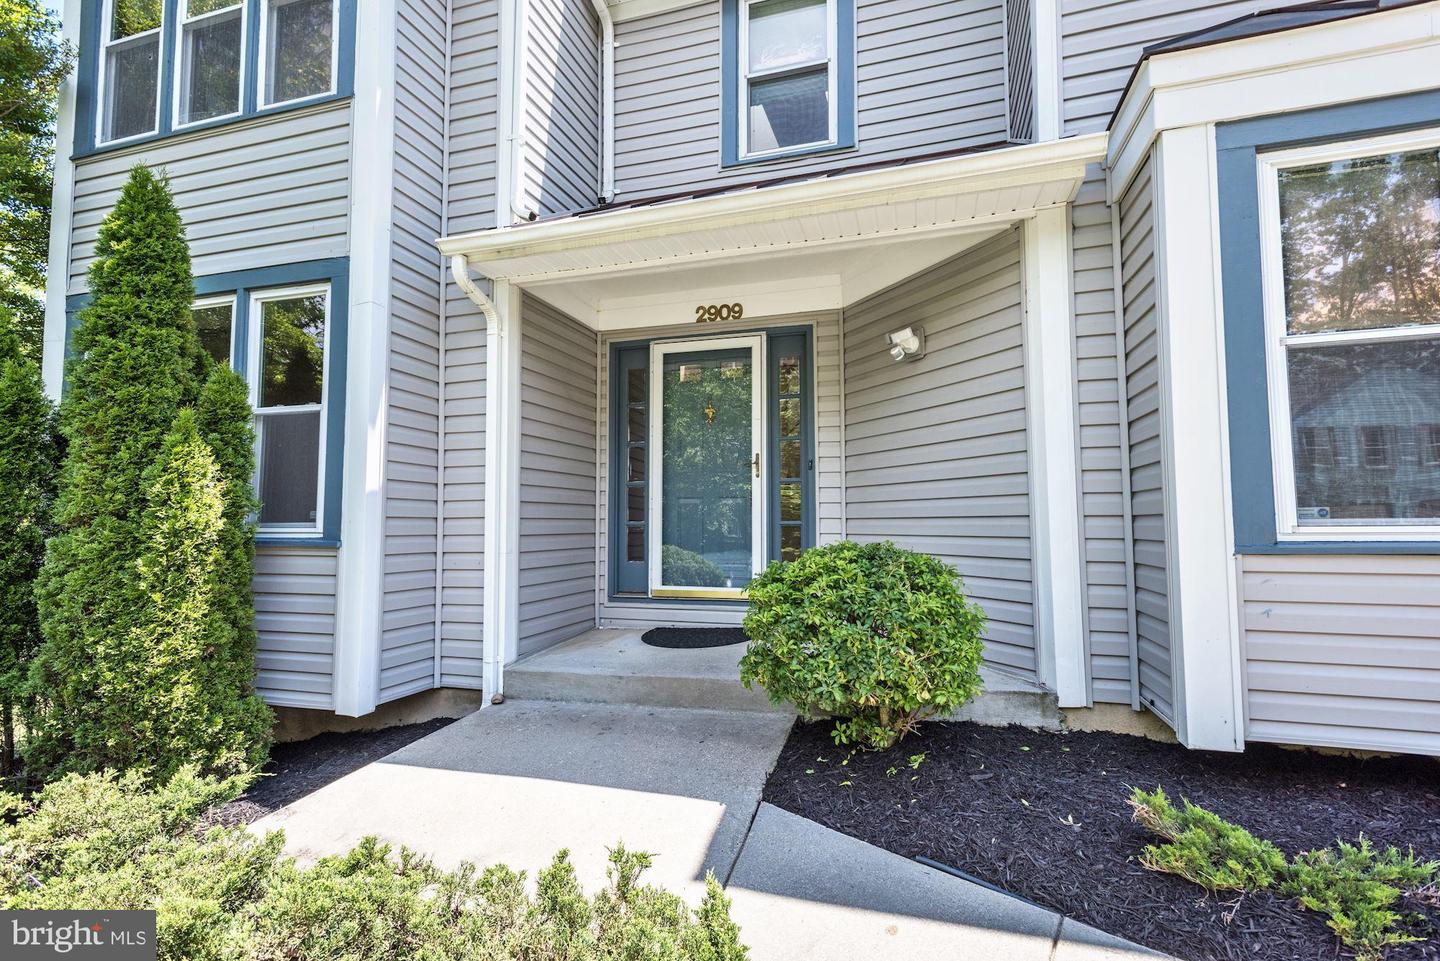 2909 MEMORY LN, SILVER SPRING, Maryland 20904, 4 Bedrooms Bedrooms, ,4 BathroomsBathrooms,Single Family,For Sale,2909 MEMORY LN,MDMC711990